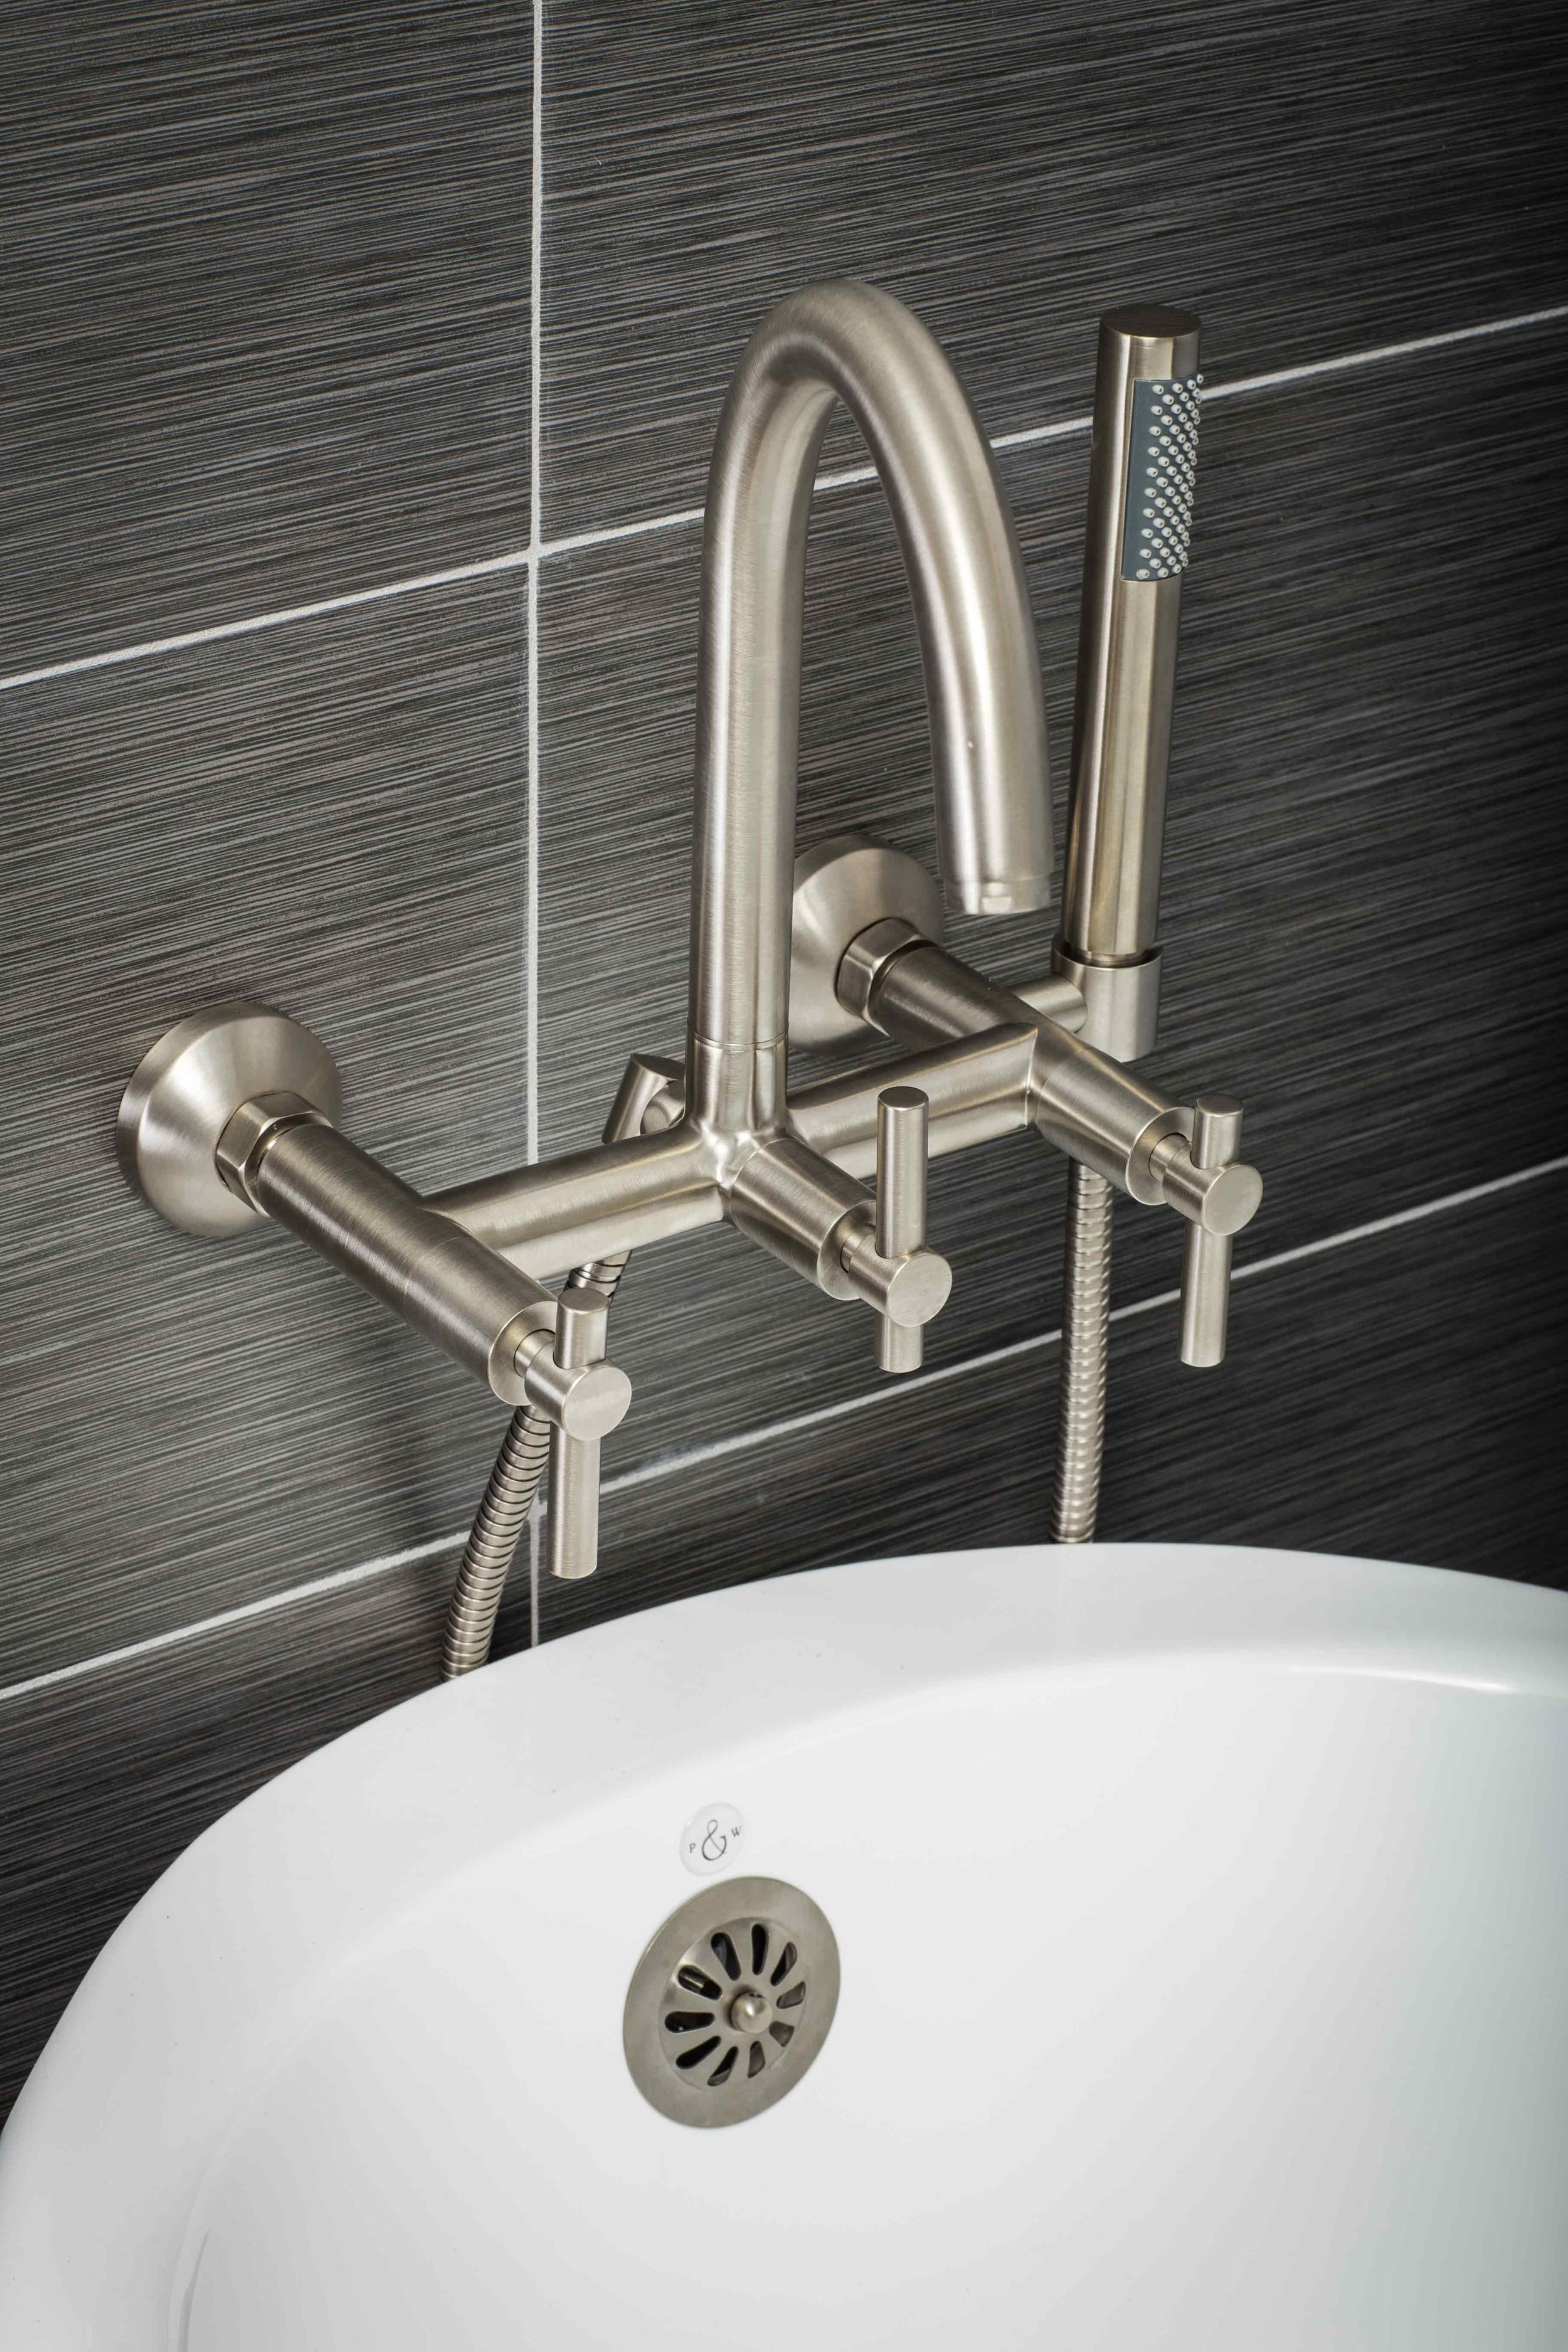 contemporary wall mount tub filler